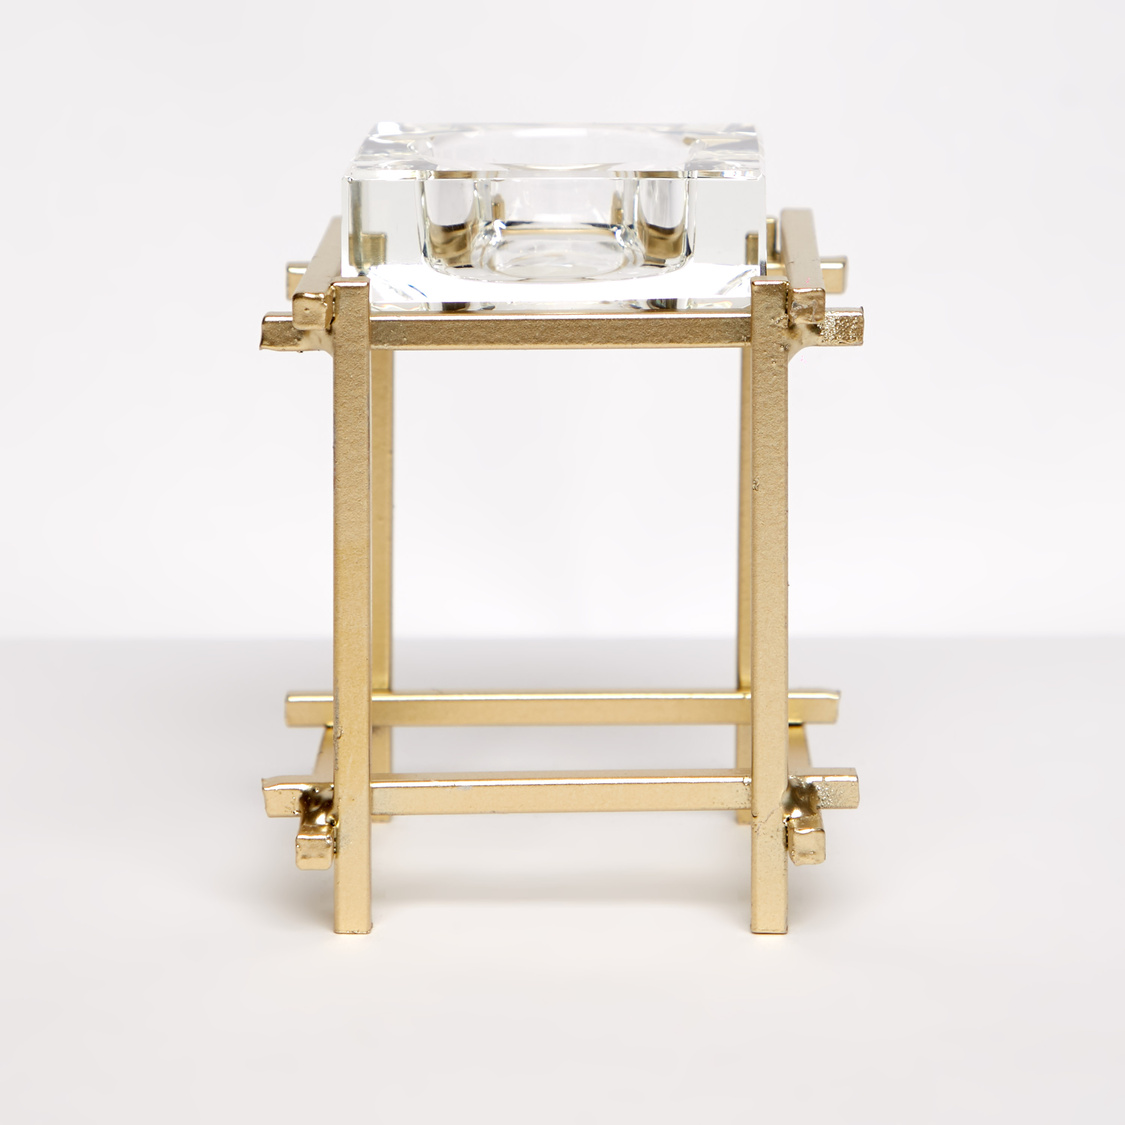 Decorative Square Votive Candle Holder with Stand